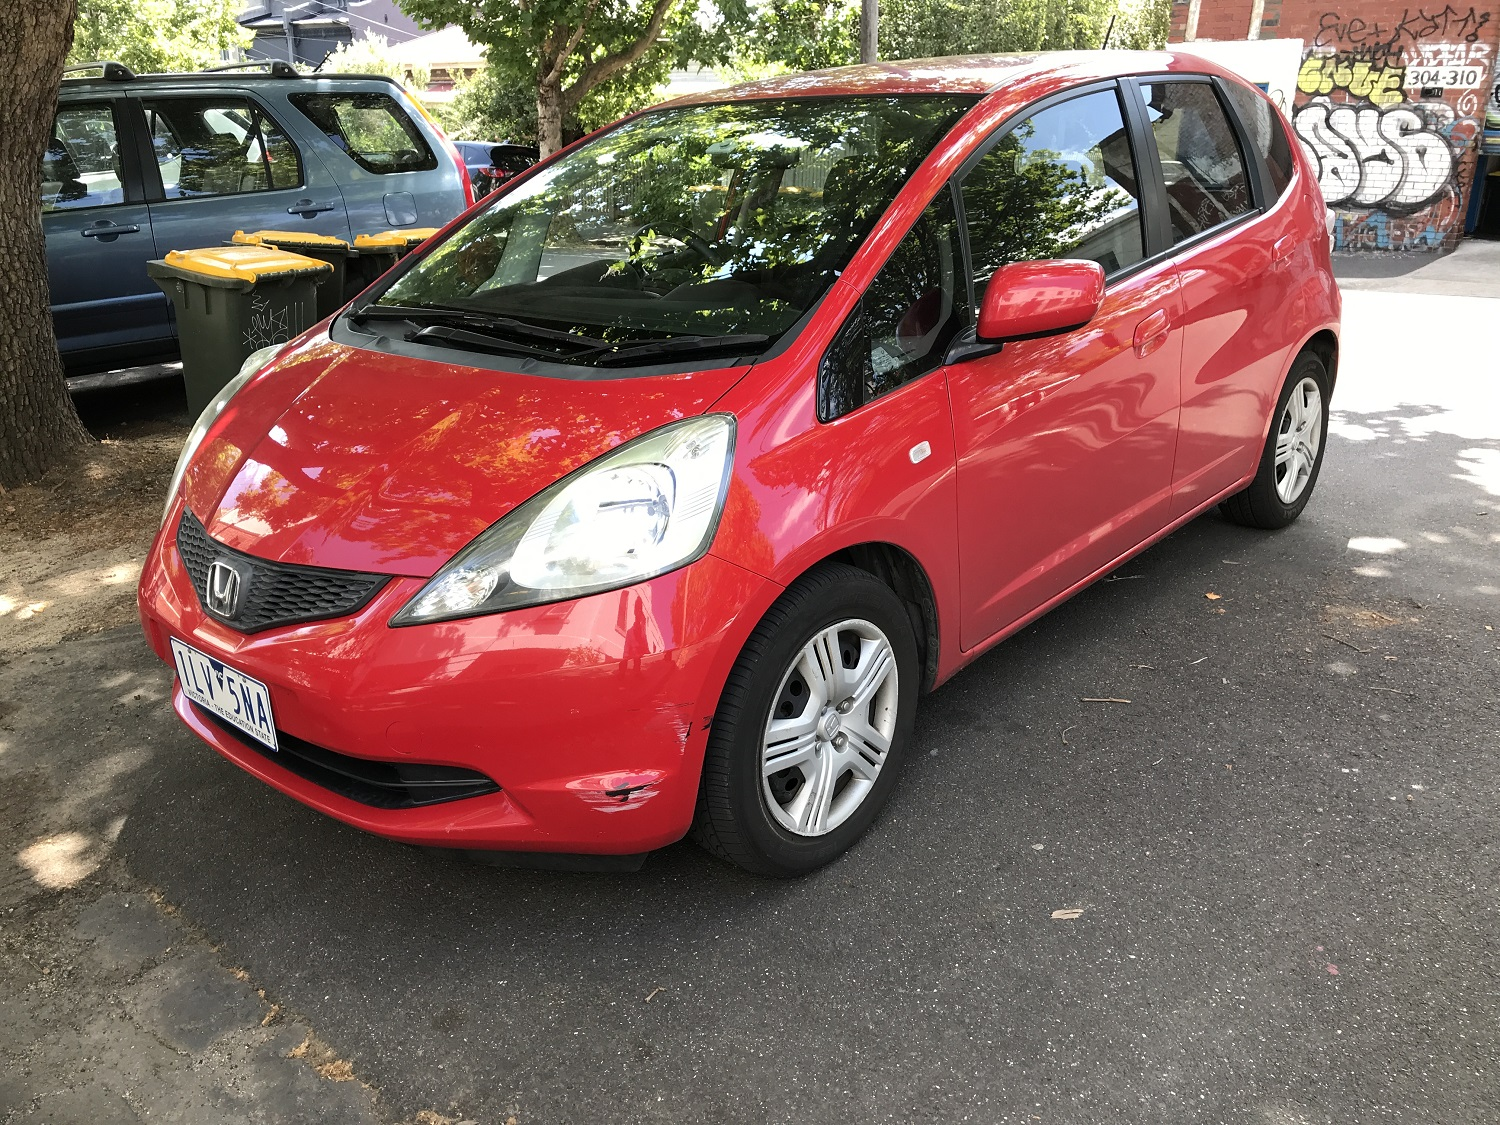 Picture of Cameron's 2008 Honda Jazz